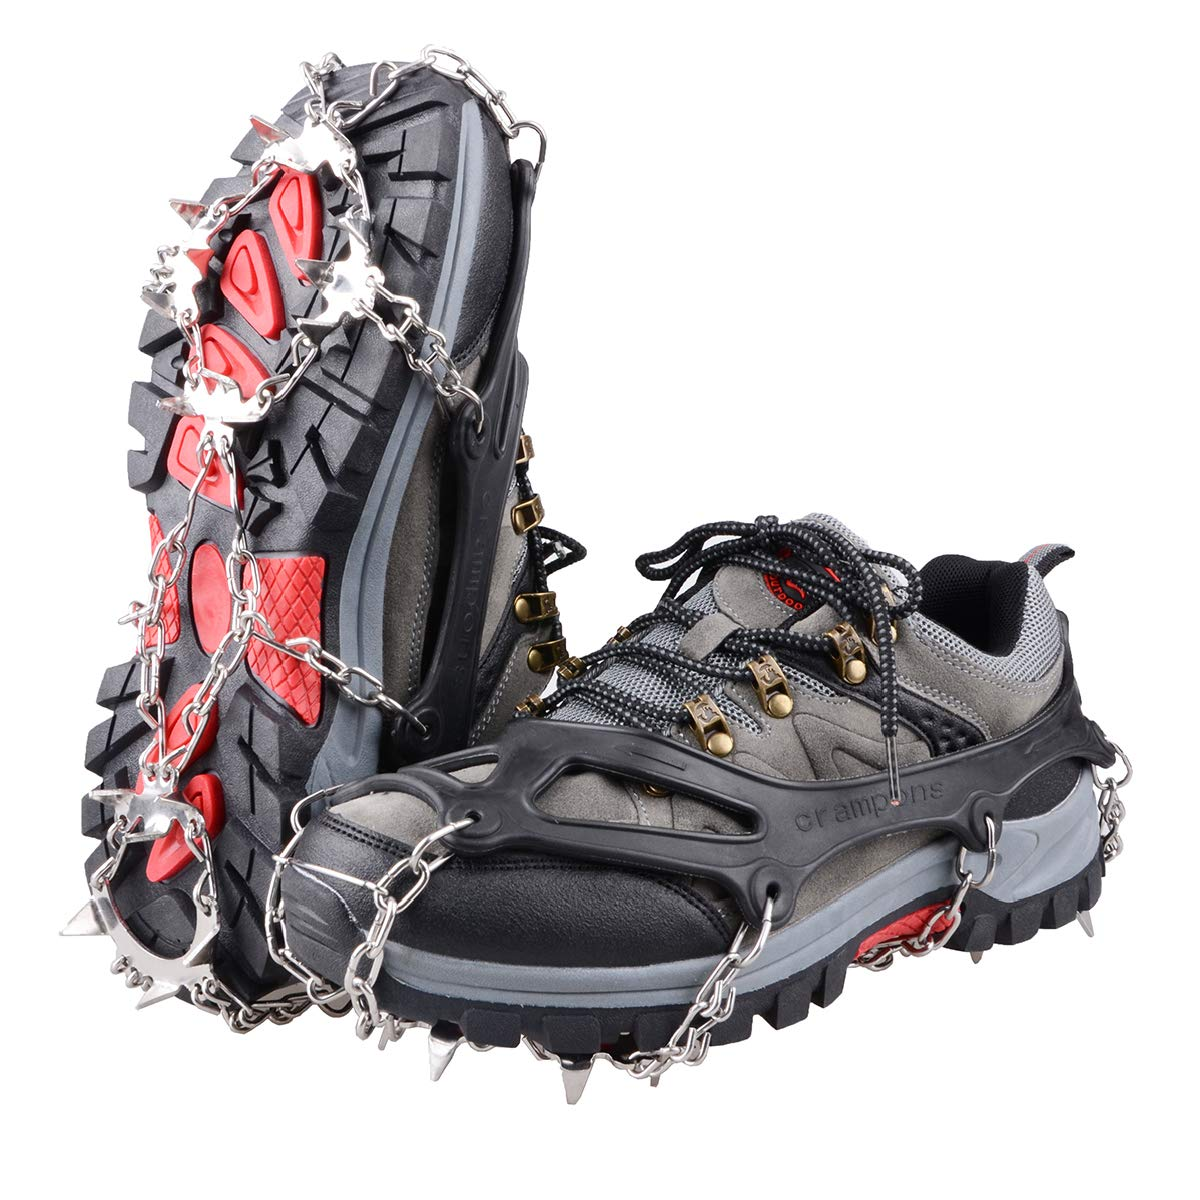 Triwonder Glace Neige Grips sur Chaussures/bottes Traction Taquet en caoutchouc Pointes à enfiler stretch Chaussures Traction antidérapant Crampons Crampons